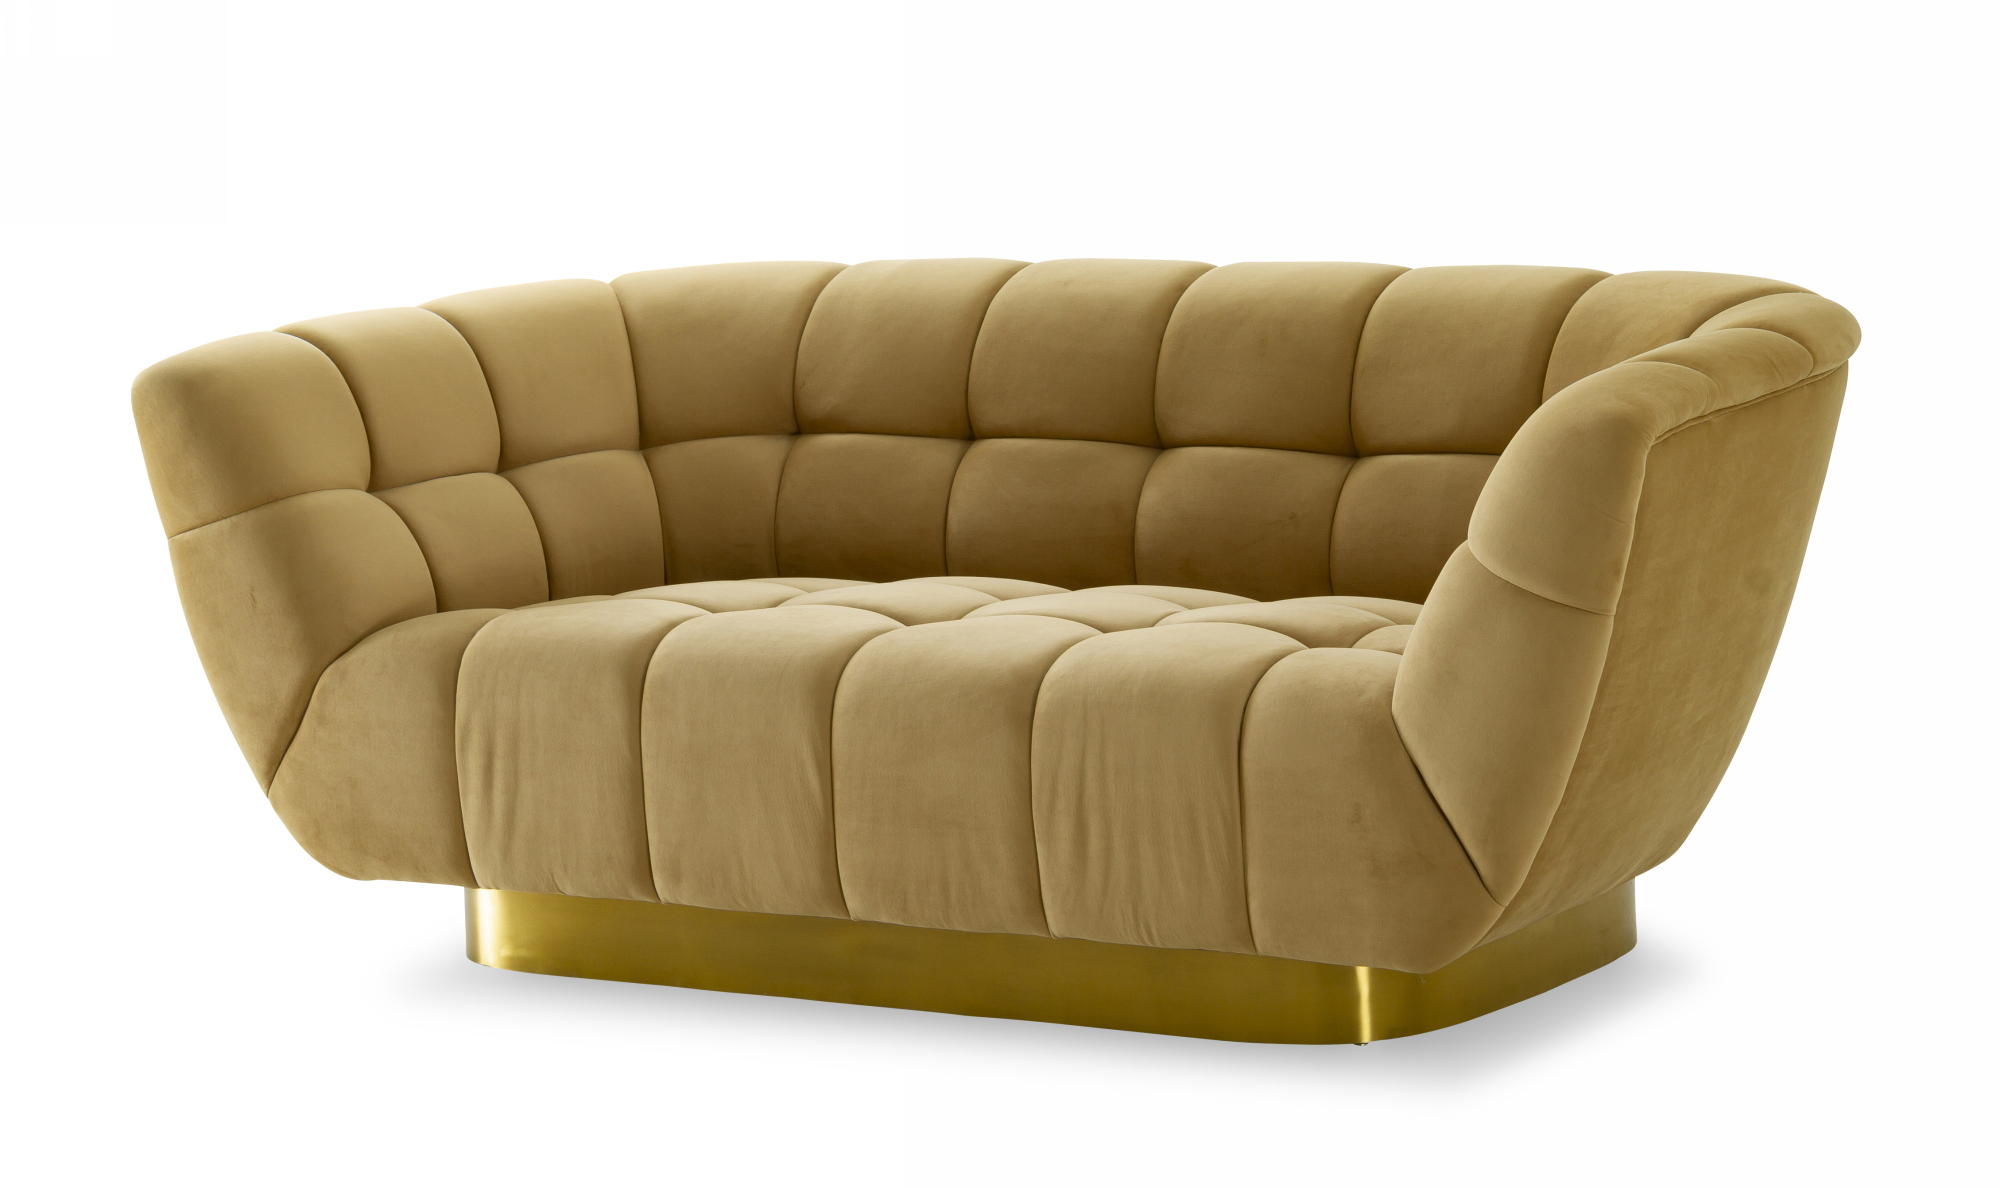 VIG Furniture Divani Casa Granby Glam Mustard and Gold Fabric Loveseat